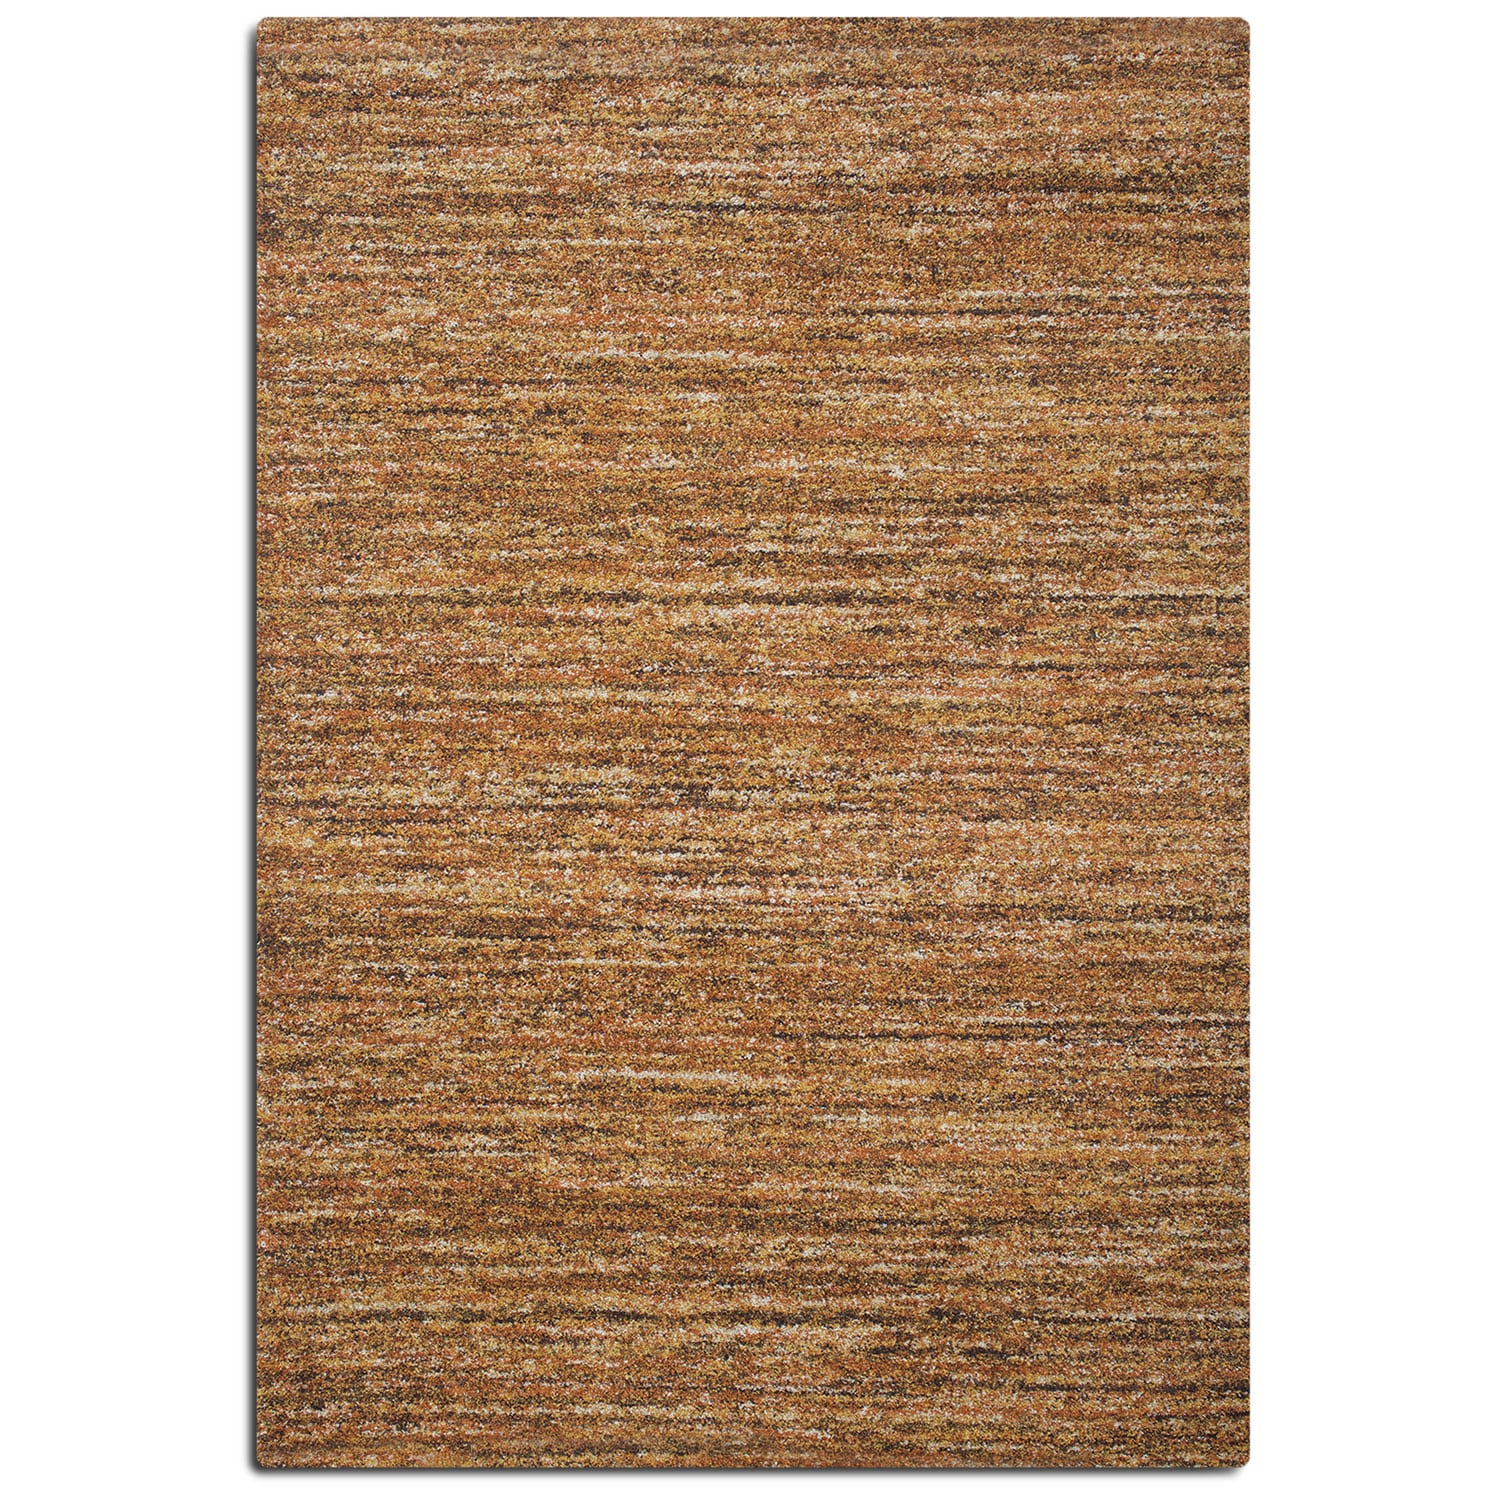 Granada 8' x 10' Area Rug - Rust and Brown